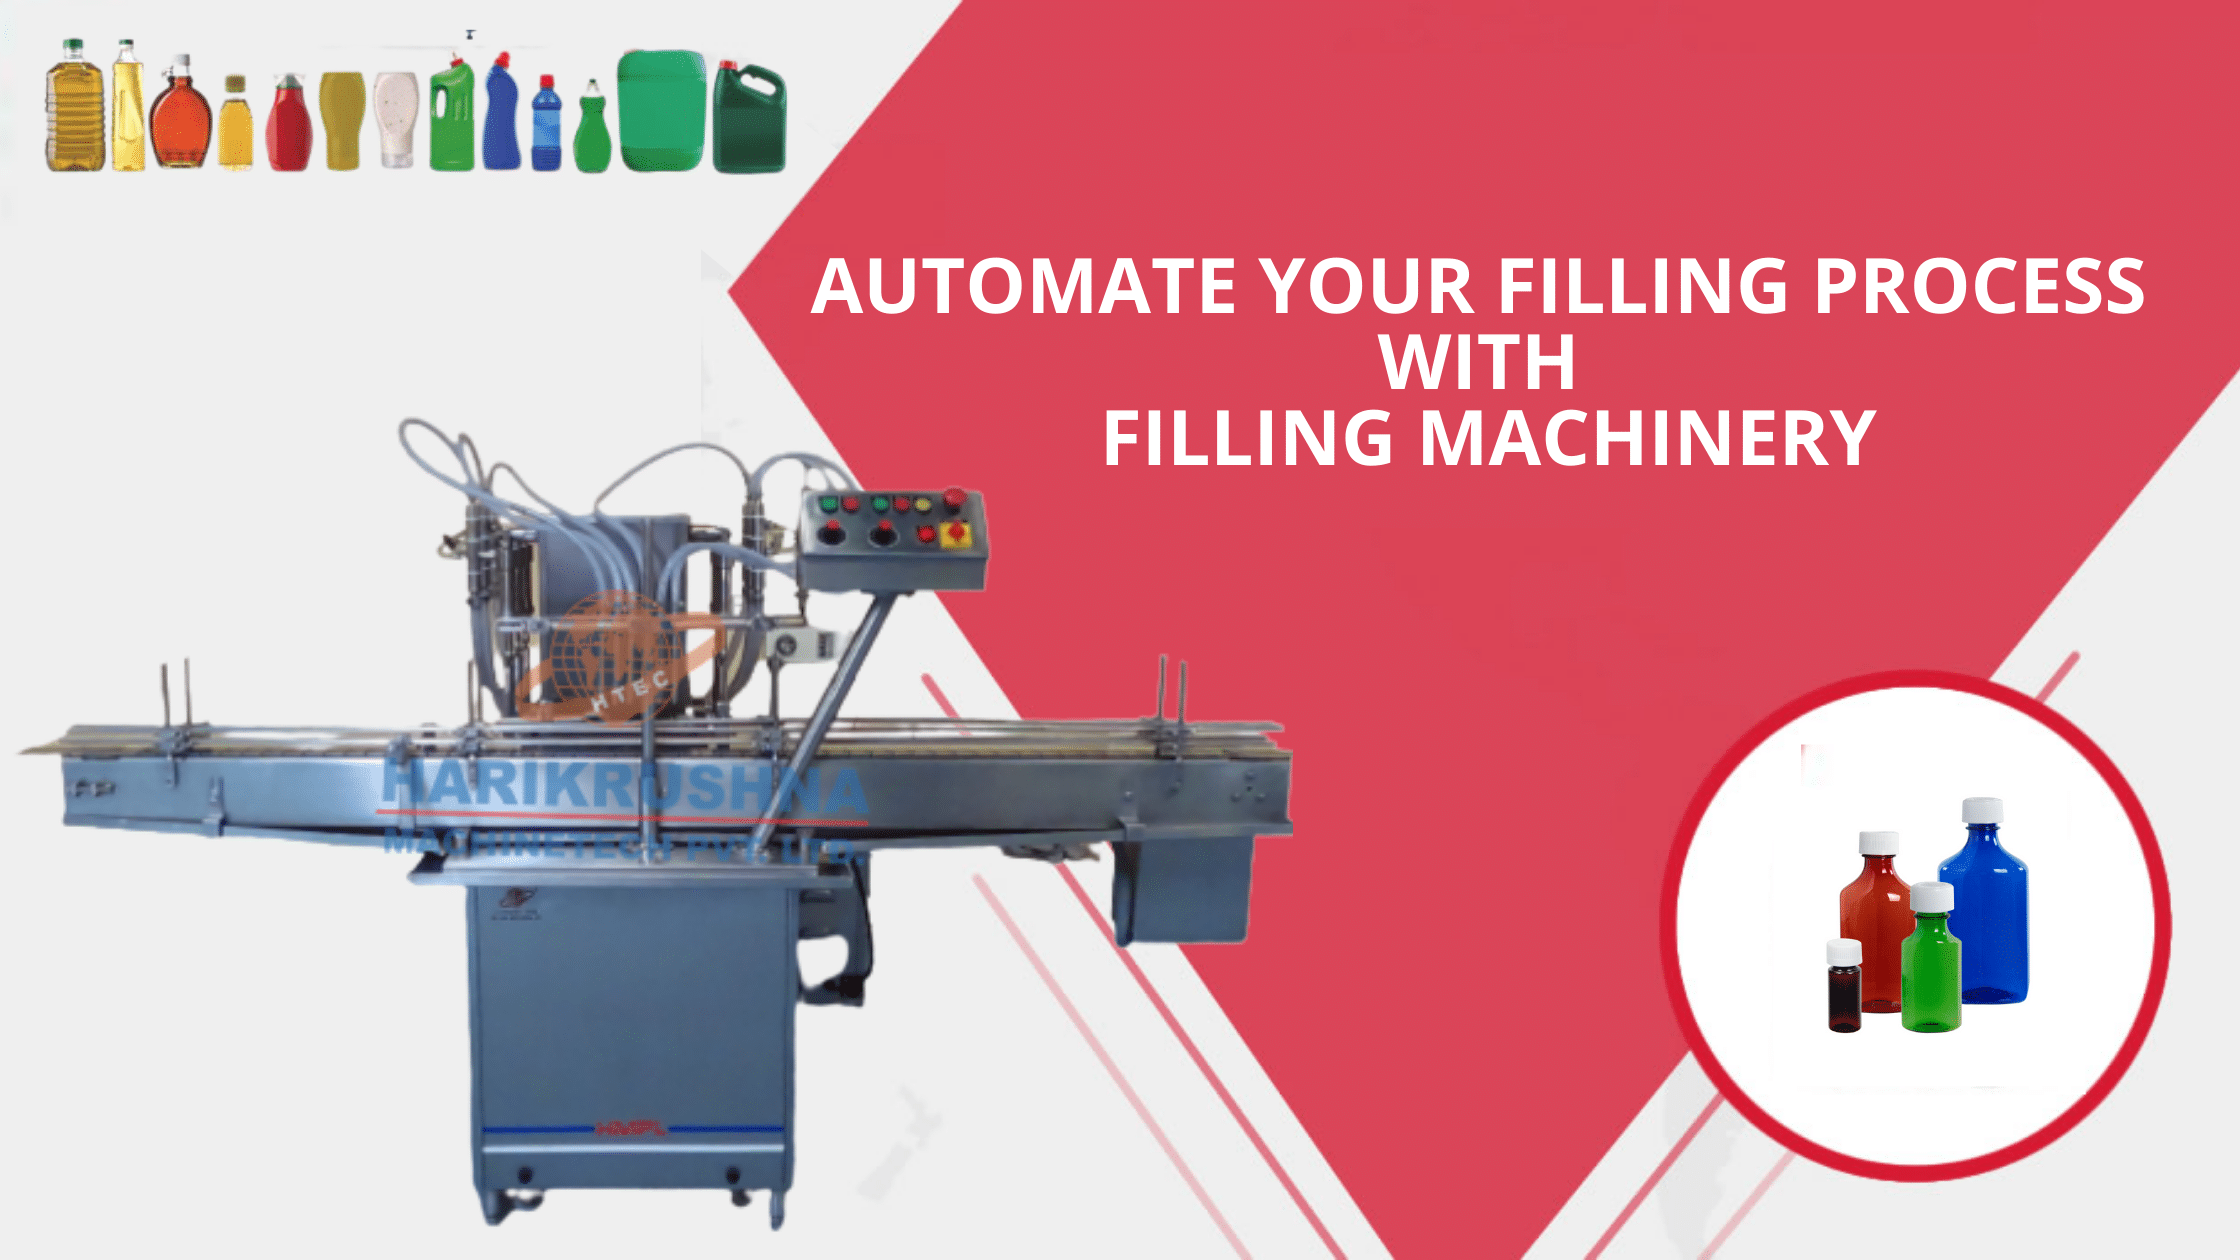 Automate Your Filling Process with Filling Machinery - Harikrushna Machines Private Limited